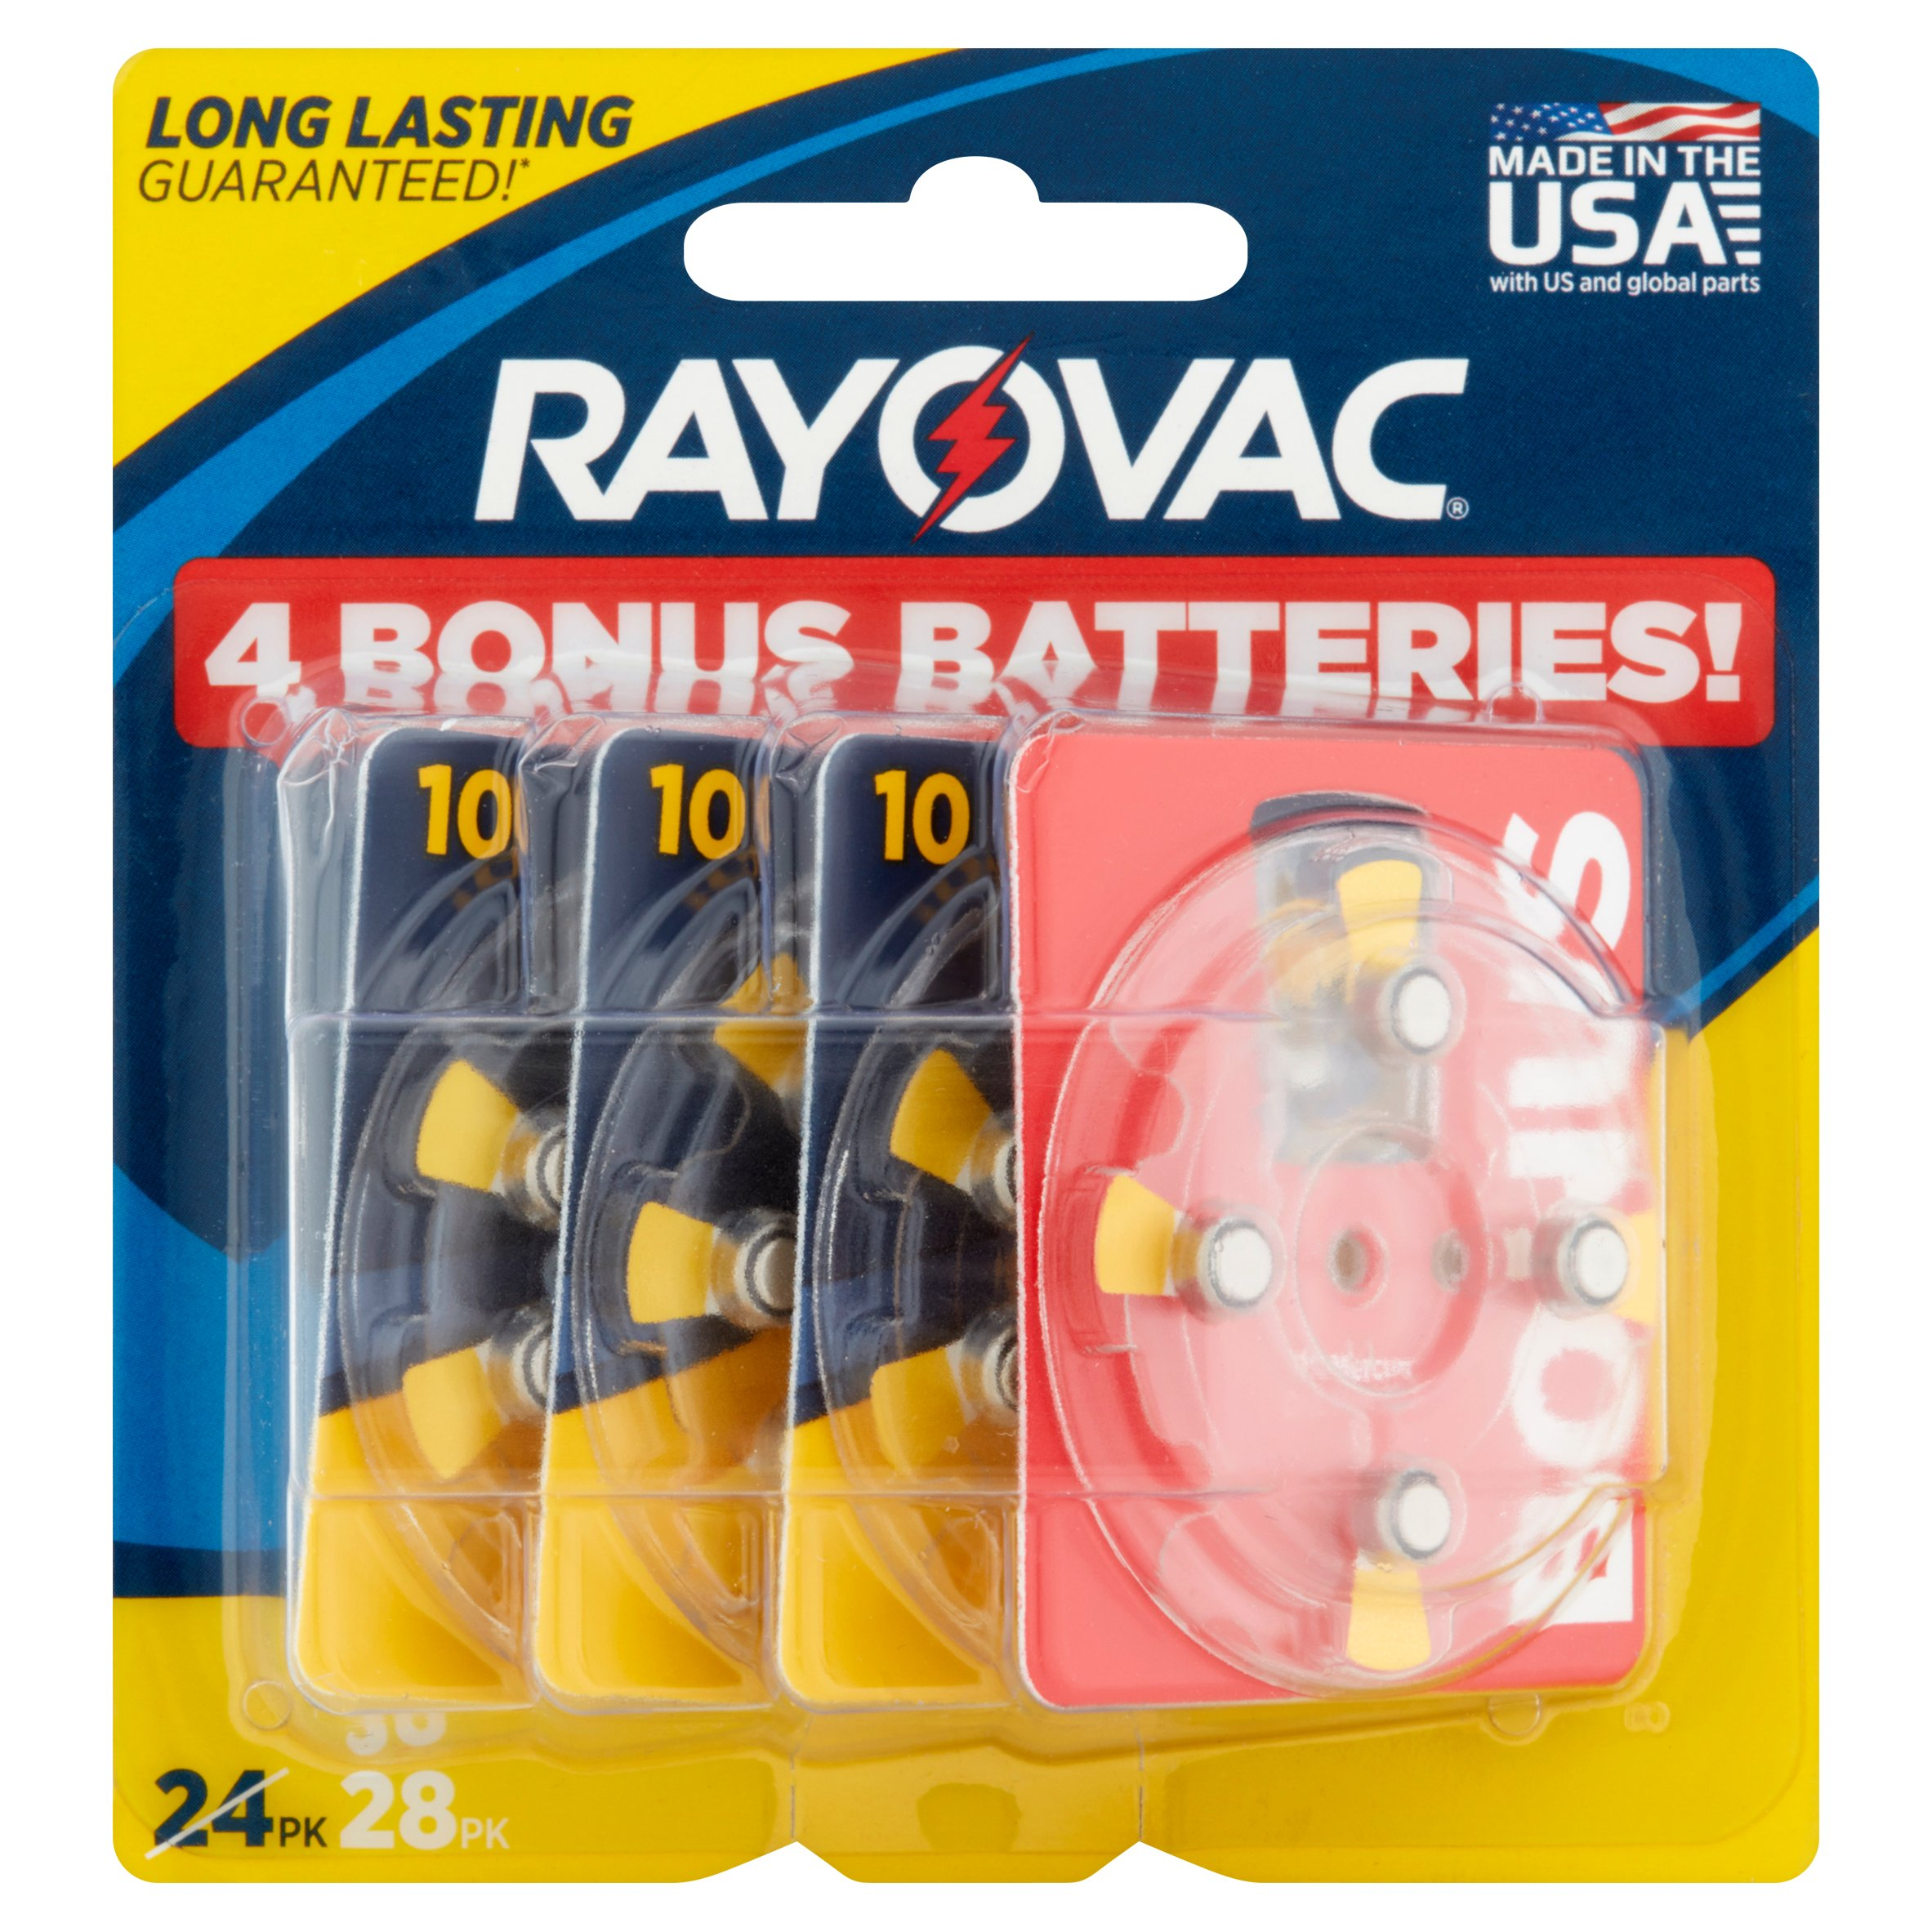 Rayovac 1.45V Hearing Aid Batteries, 28 count